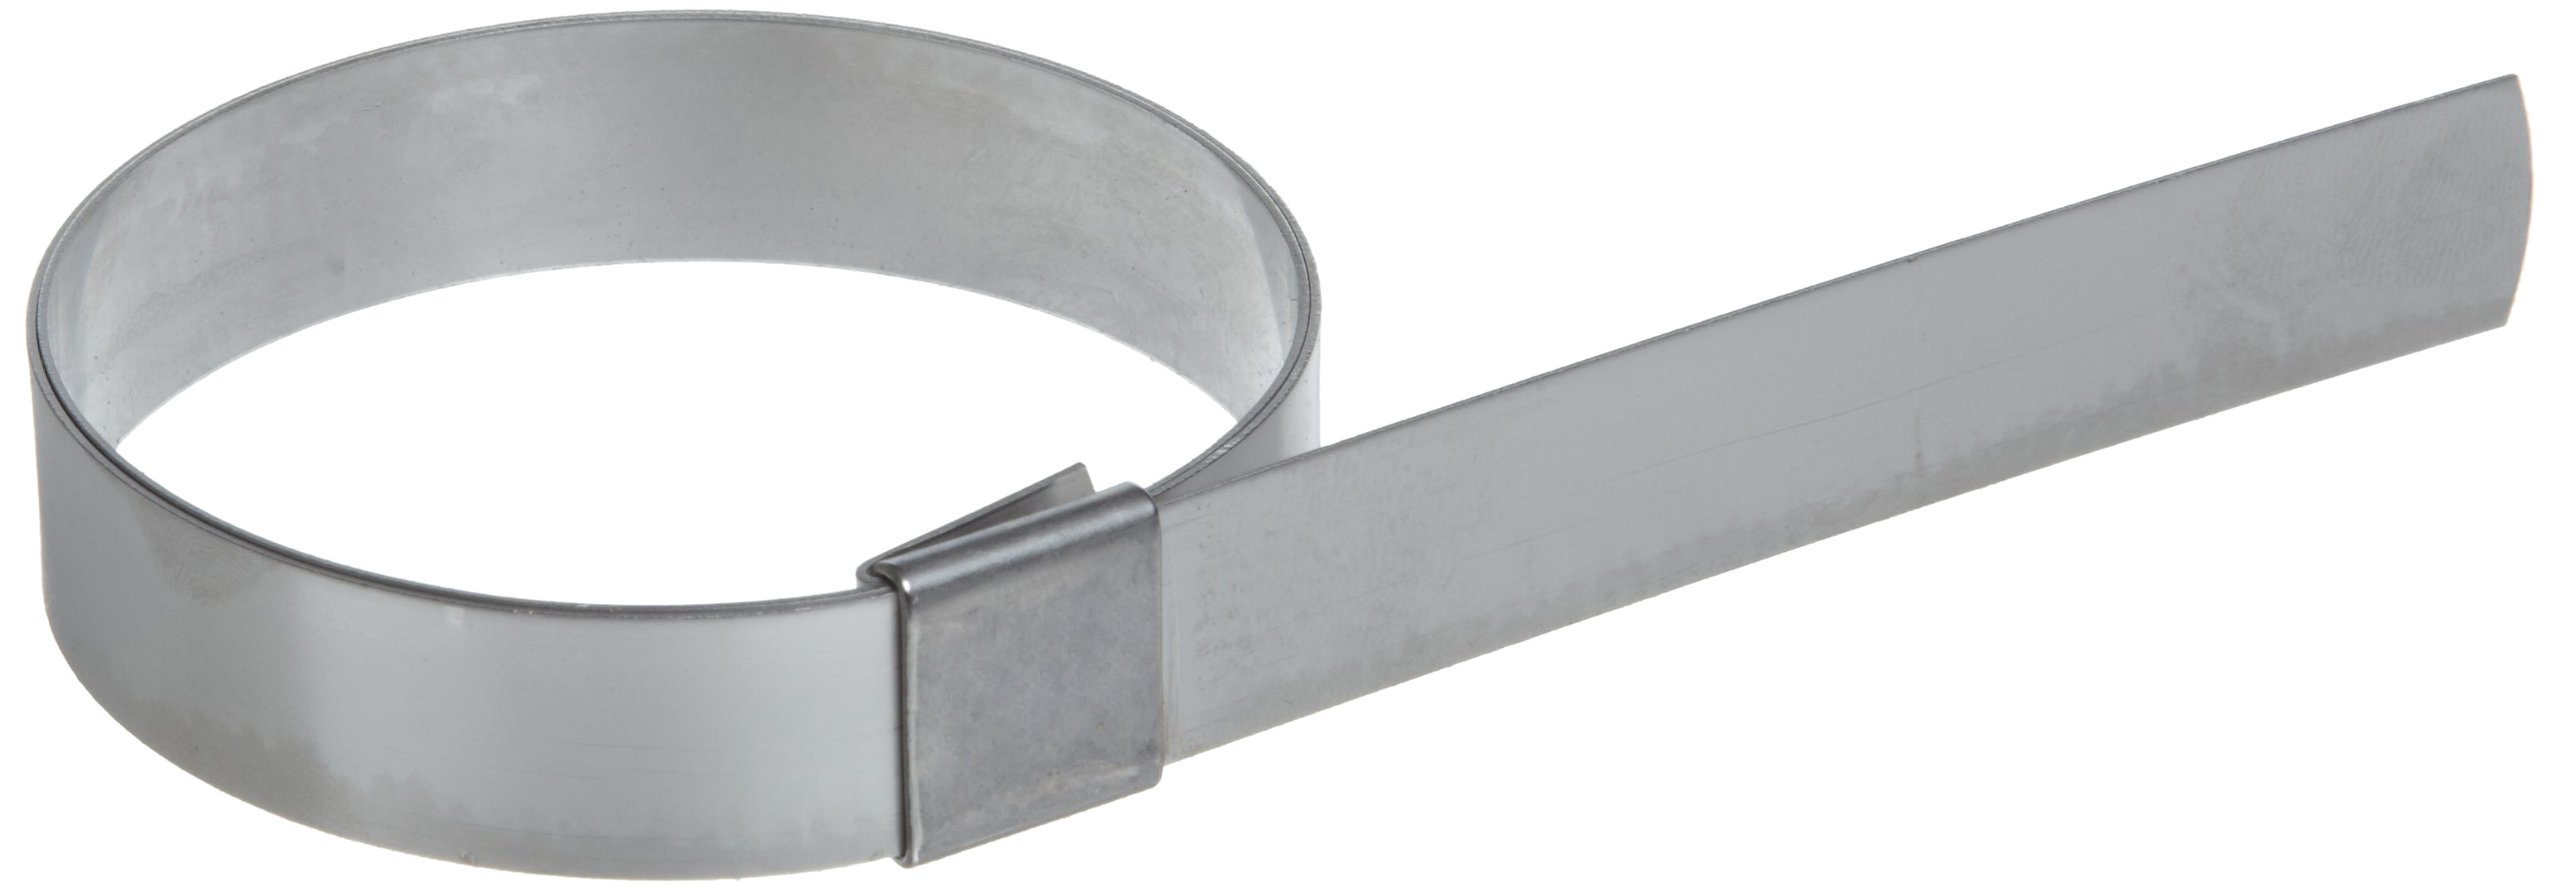 BAND-IT CP11S9 5/8'' Wide x 0.025'' Thick 2-3/2'' Diameter, 201 Stainless Steel Center Punch Clamp (50 Per Box)